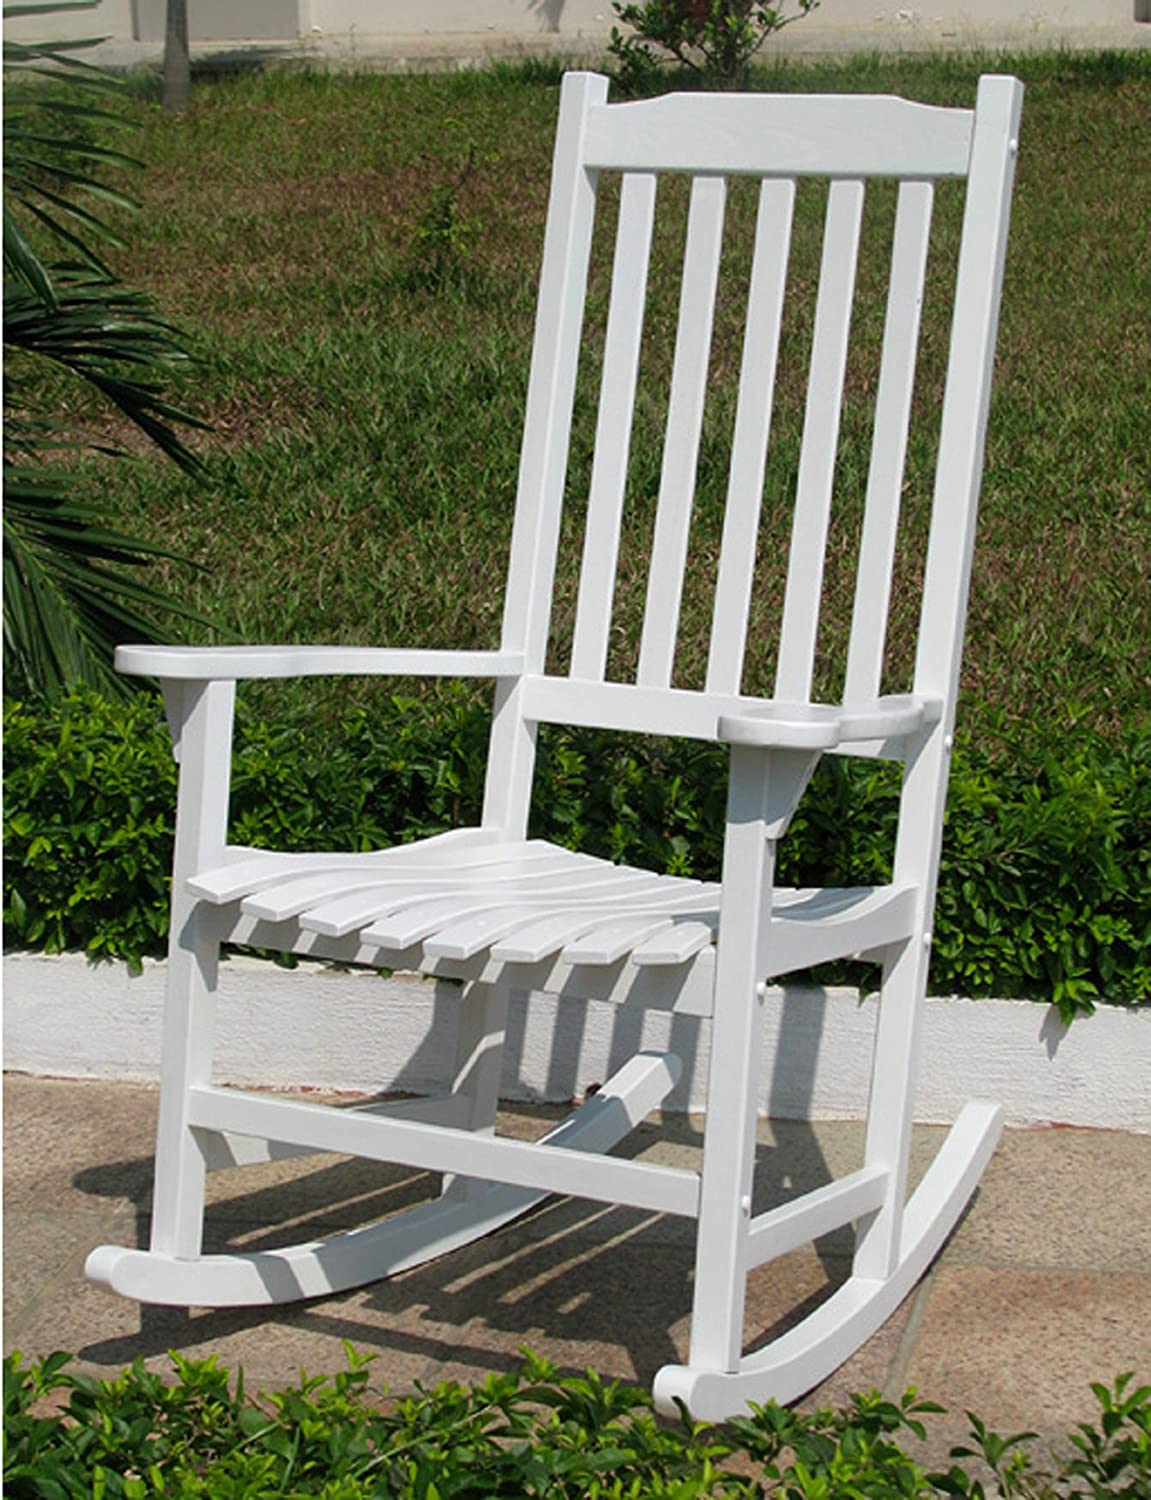 Amazon.com : Merry Garden   White Porch Rocker/Rocking Chair Acacia Wood :  Patio Rocking Chairs : Garden U0026 Outdoor